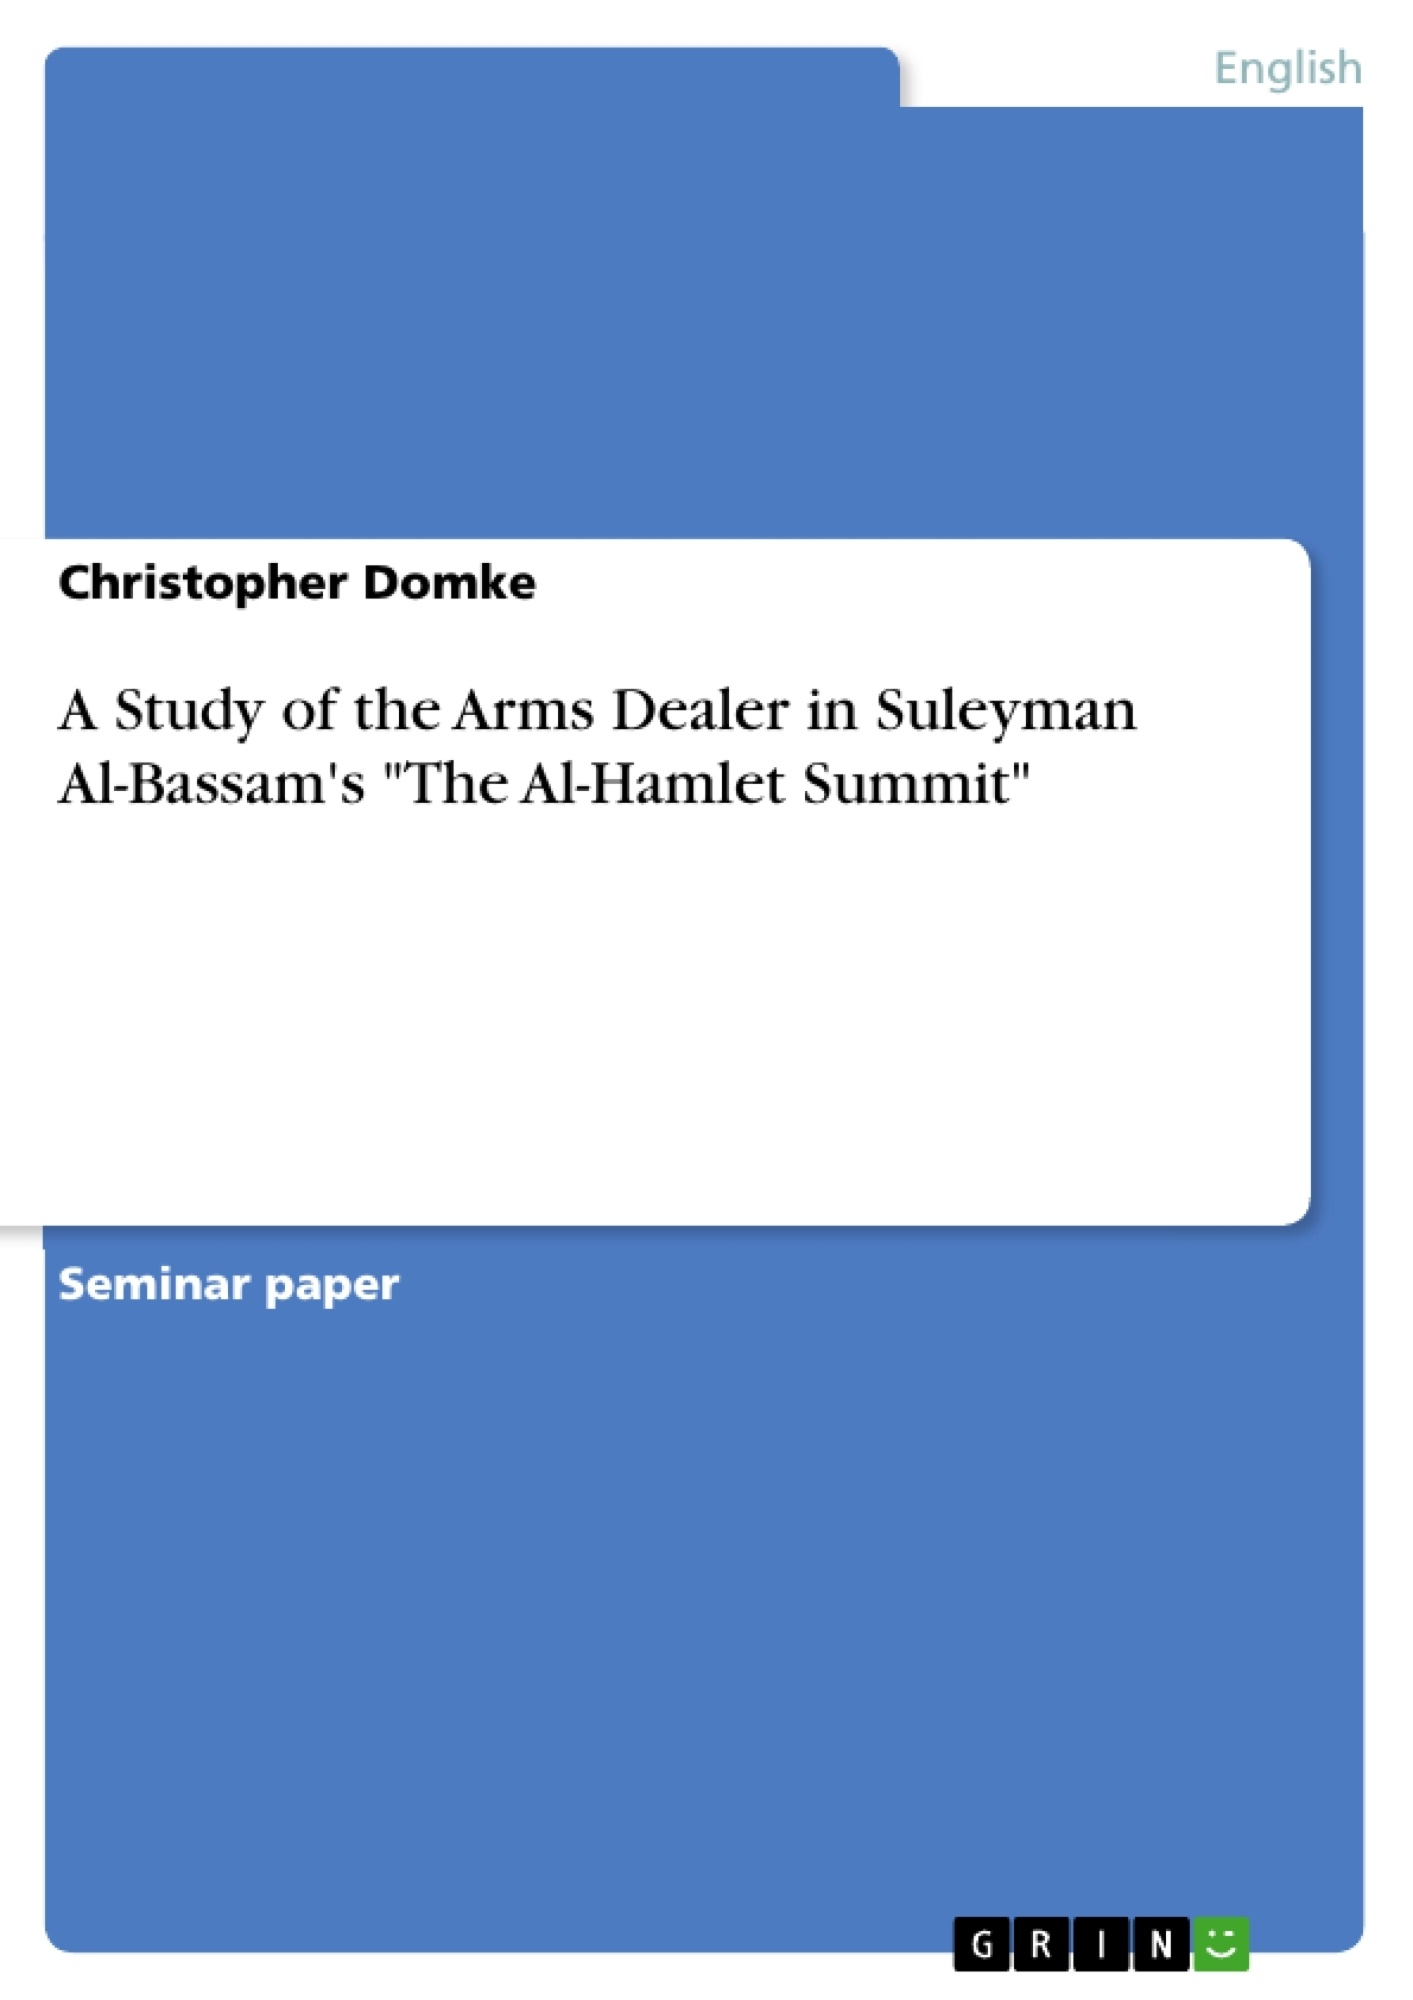 """Title: A Study of the Arms Dealer in Suleyman Al-Bassam's """"The Al-Hamlet Summit"""""""